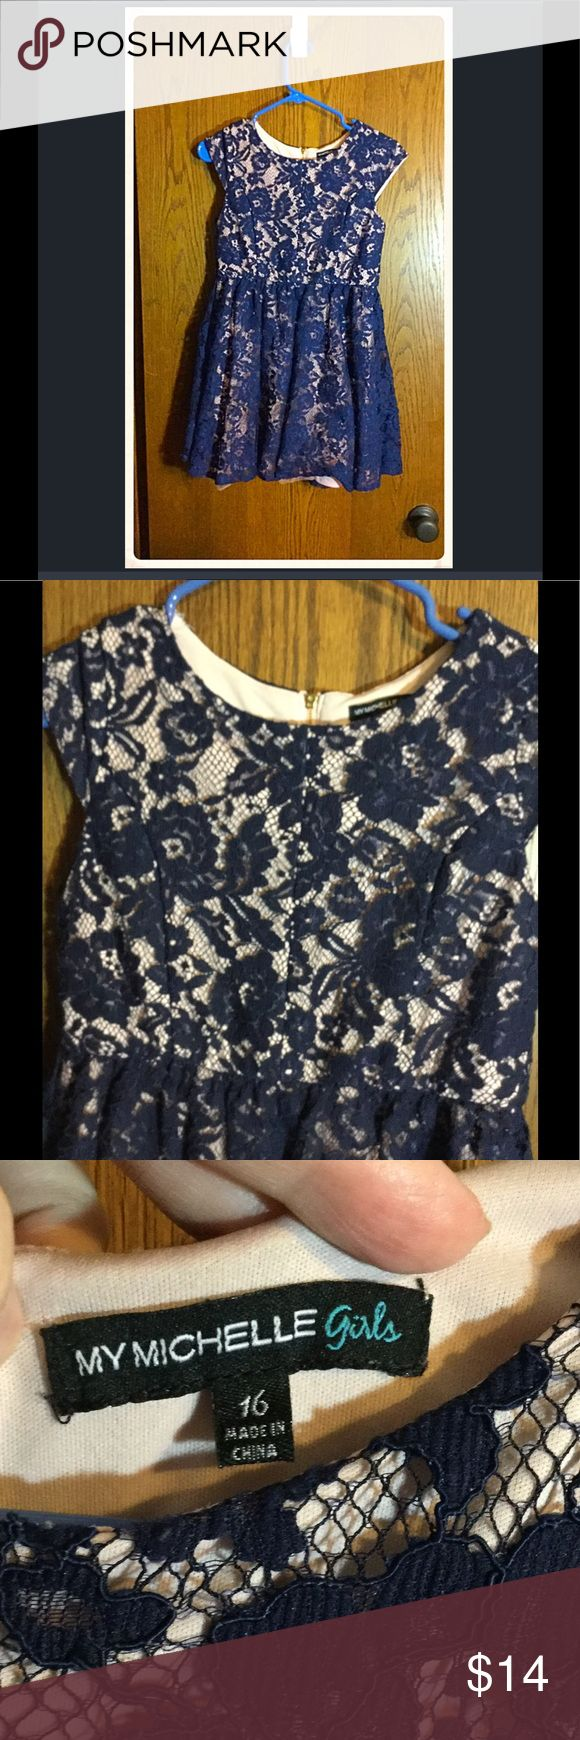 🎈BOGO 1/2🎈 Girls Navy Lace Overlay Dress Lined with tan material with a navy lace overlay. EUC. No rips or stains. Beautiful. Like new! My Michelle Dresses Formal